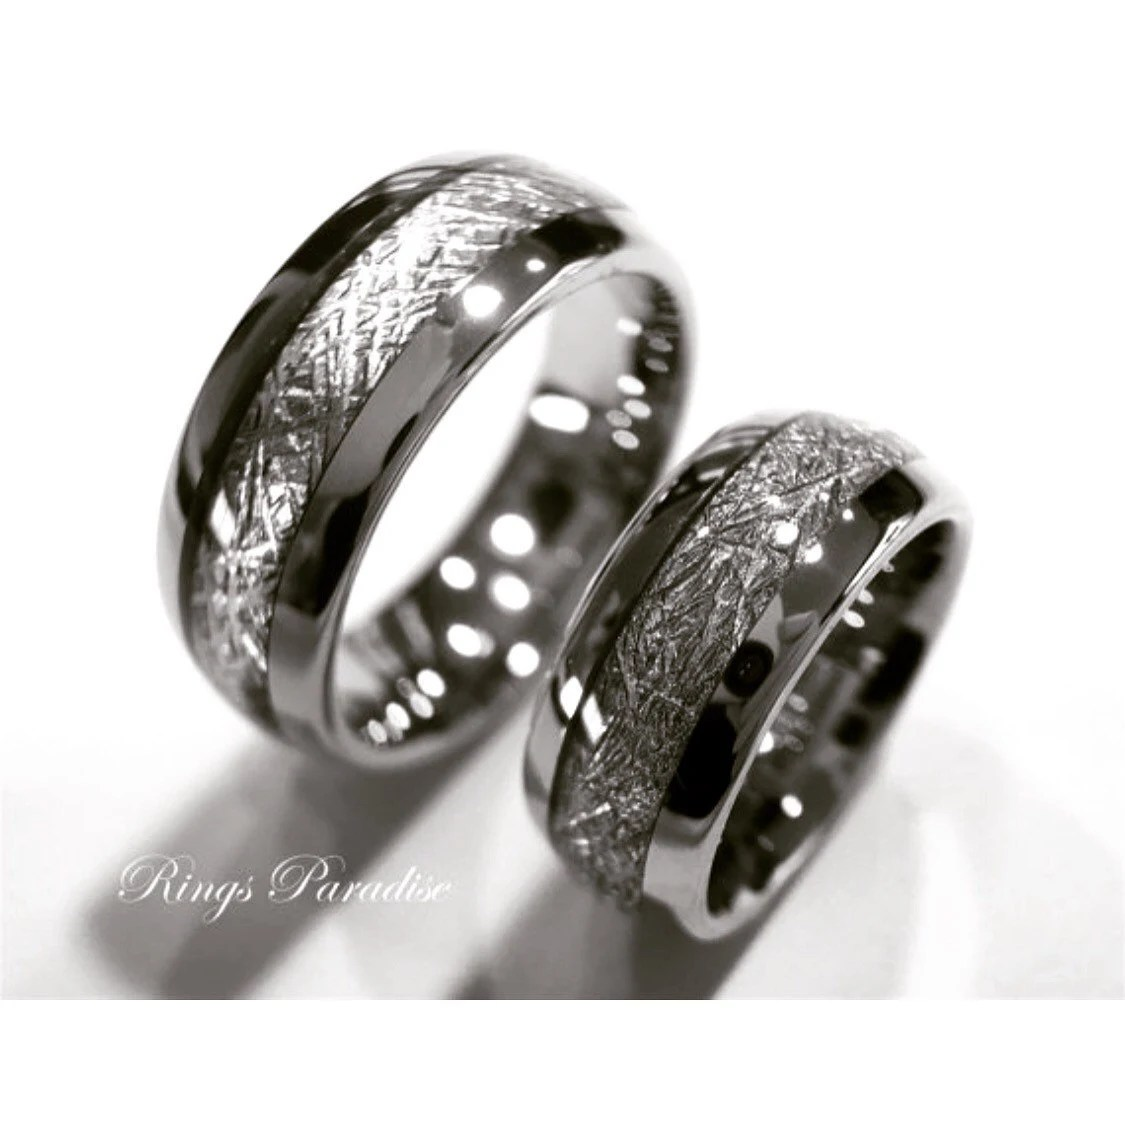 Matching Wedding Bands Meteorite Inlay Rings His by RingsParadise